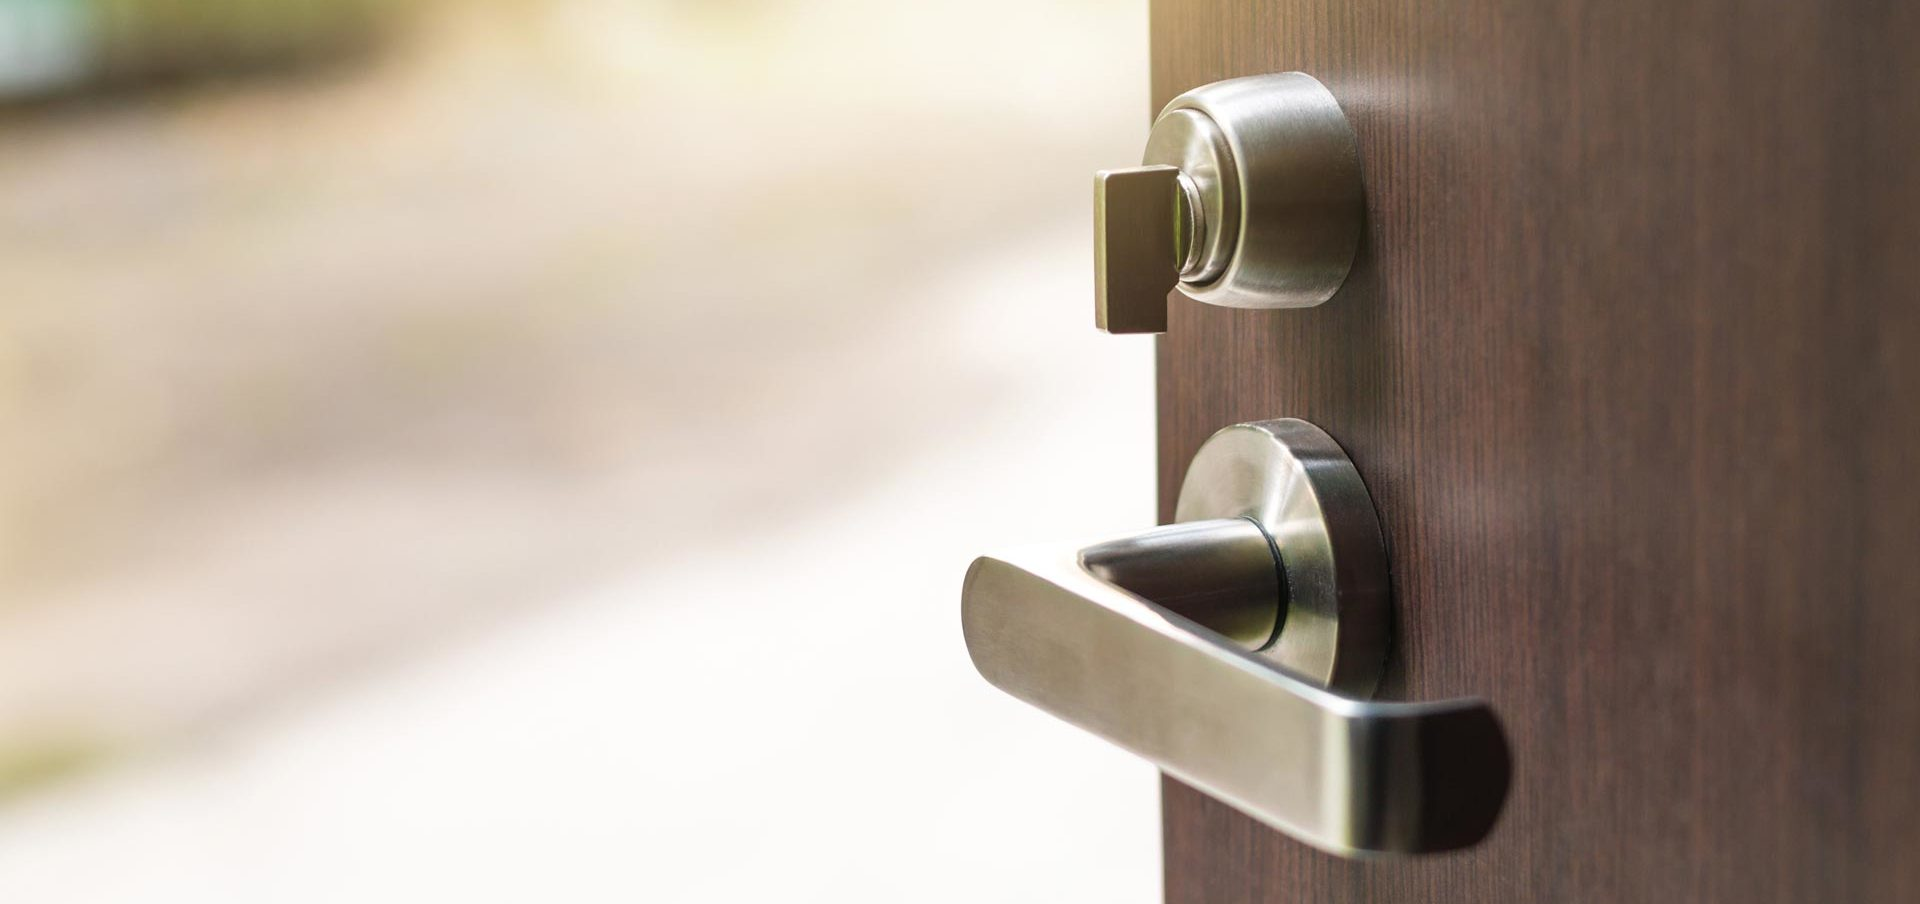 Locking and unlocking from the outside